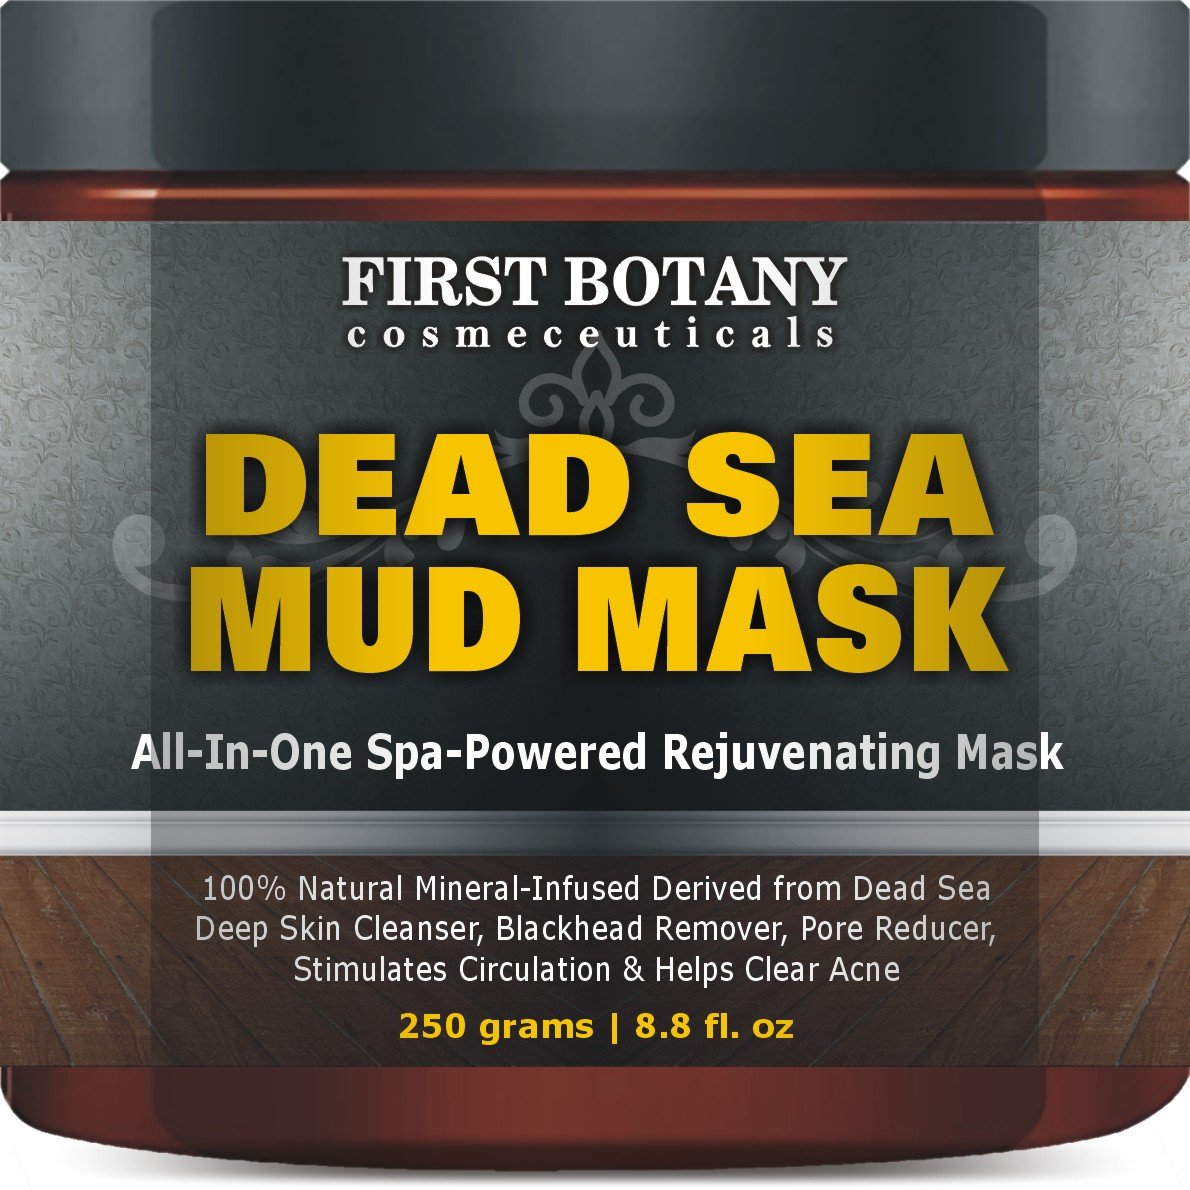 100% Natural Mineral-Infused Dead Sea Mud Mask 8.8 oz for Facial Treatment, Skin Cleanser,...